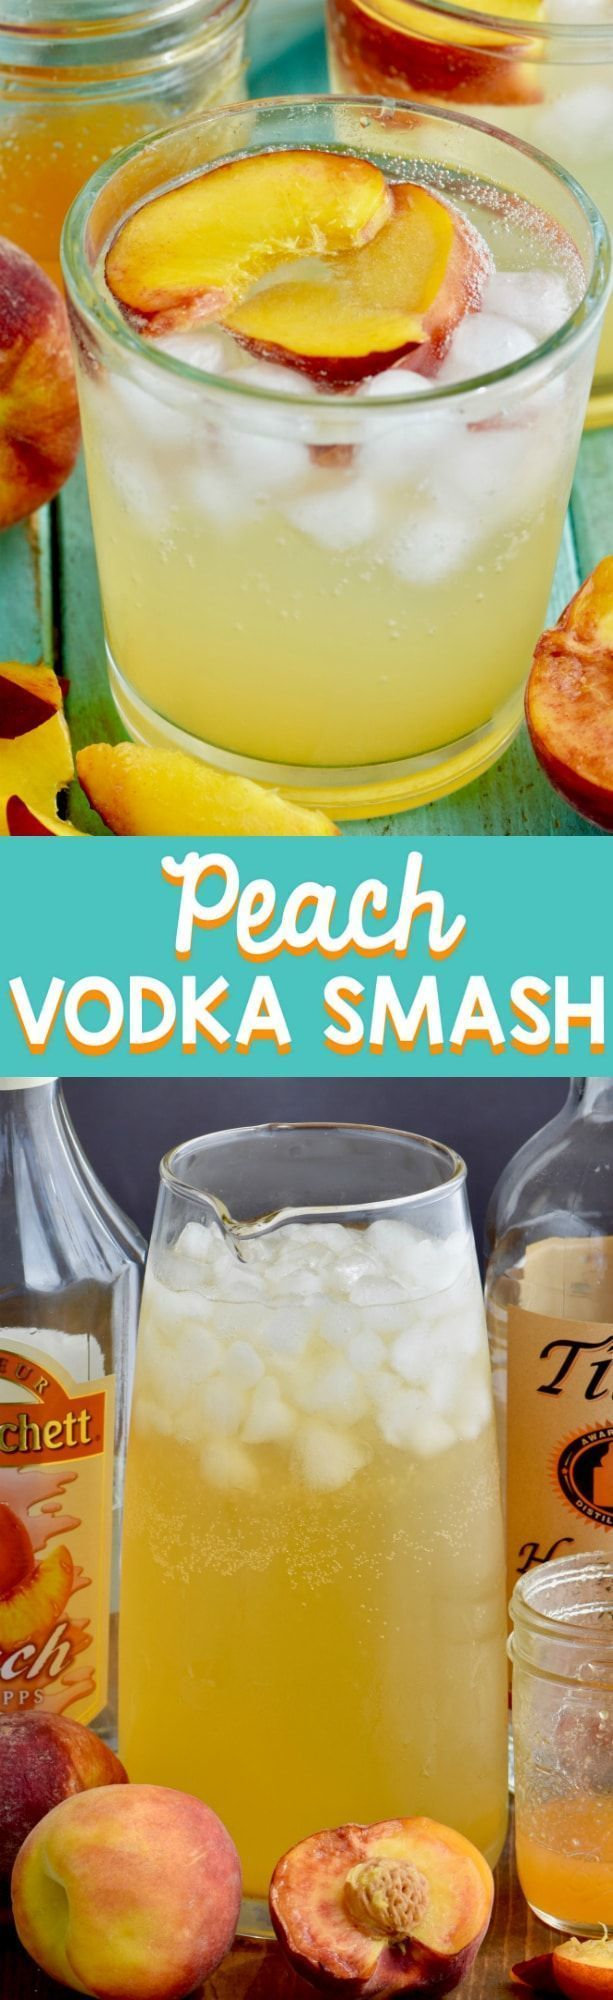 This Peach Vodka Smash is the perfect summer cocktail! Refreshing and delicious! #summercocktails